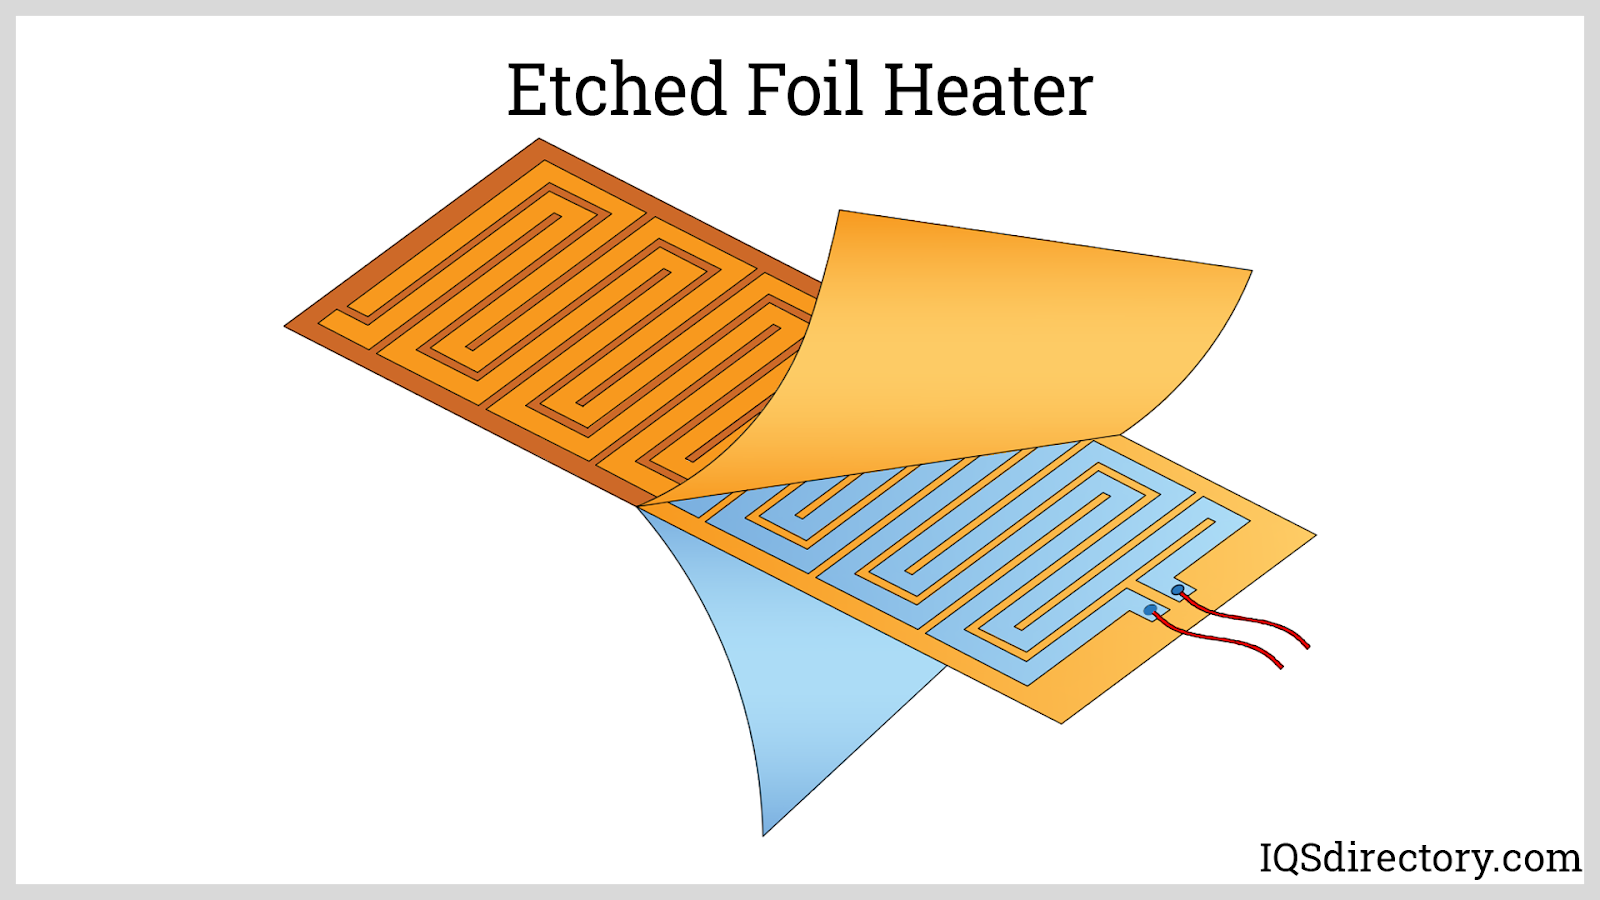 Etched Foil Heater